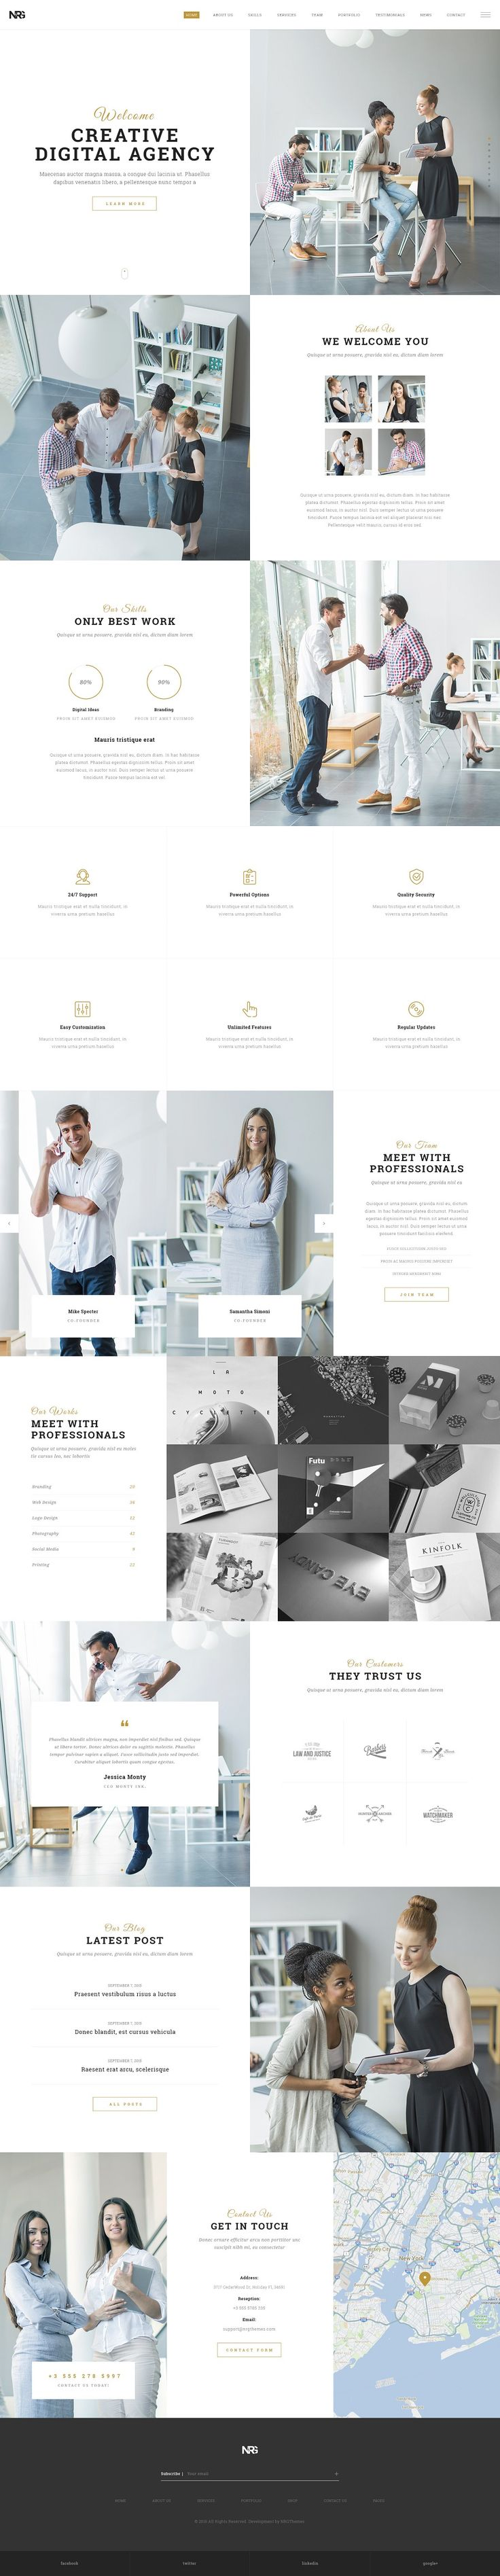 Business WordPress Theme for Creative Agencies! #wordpress #web #design